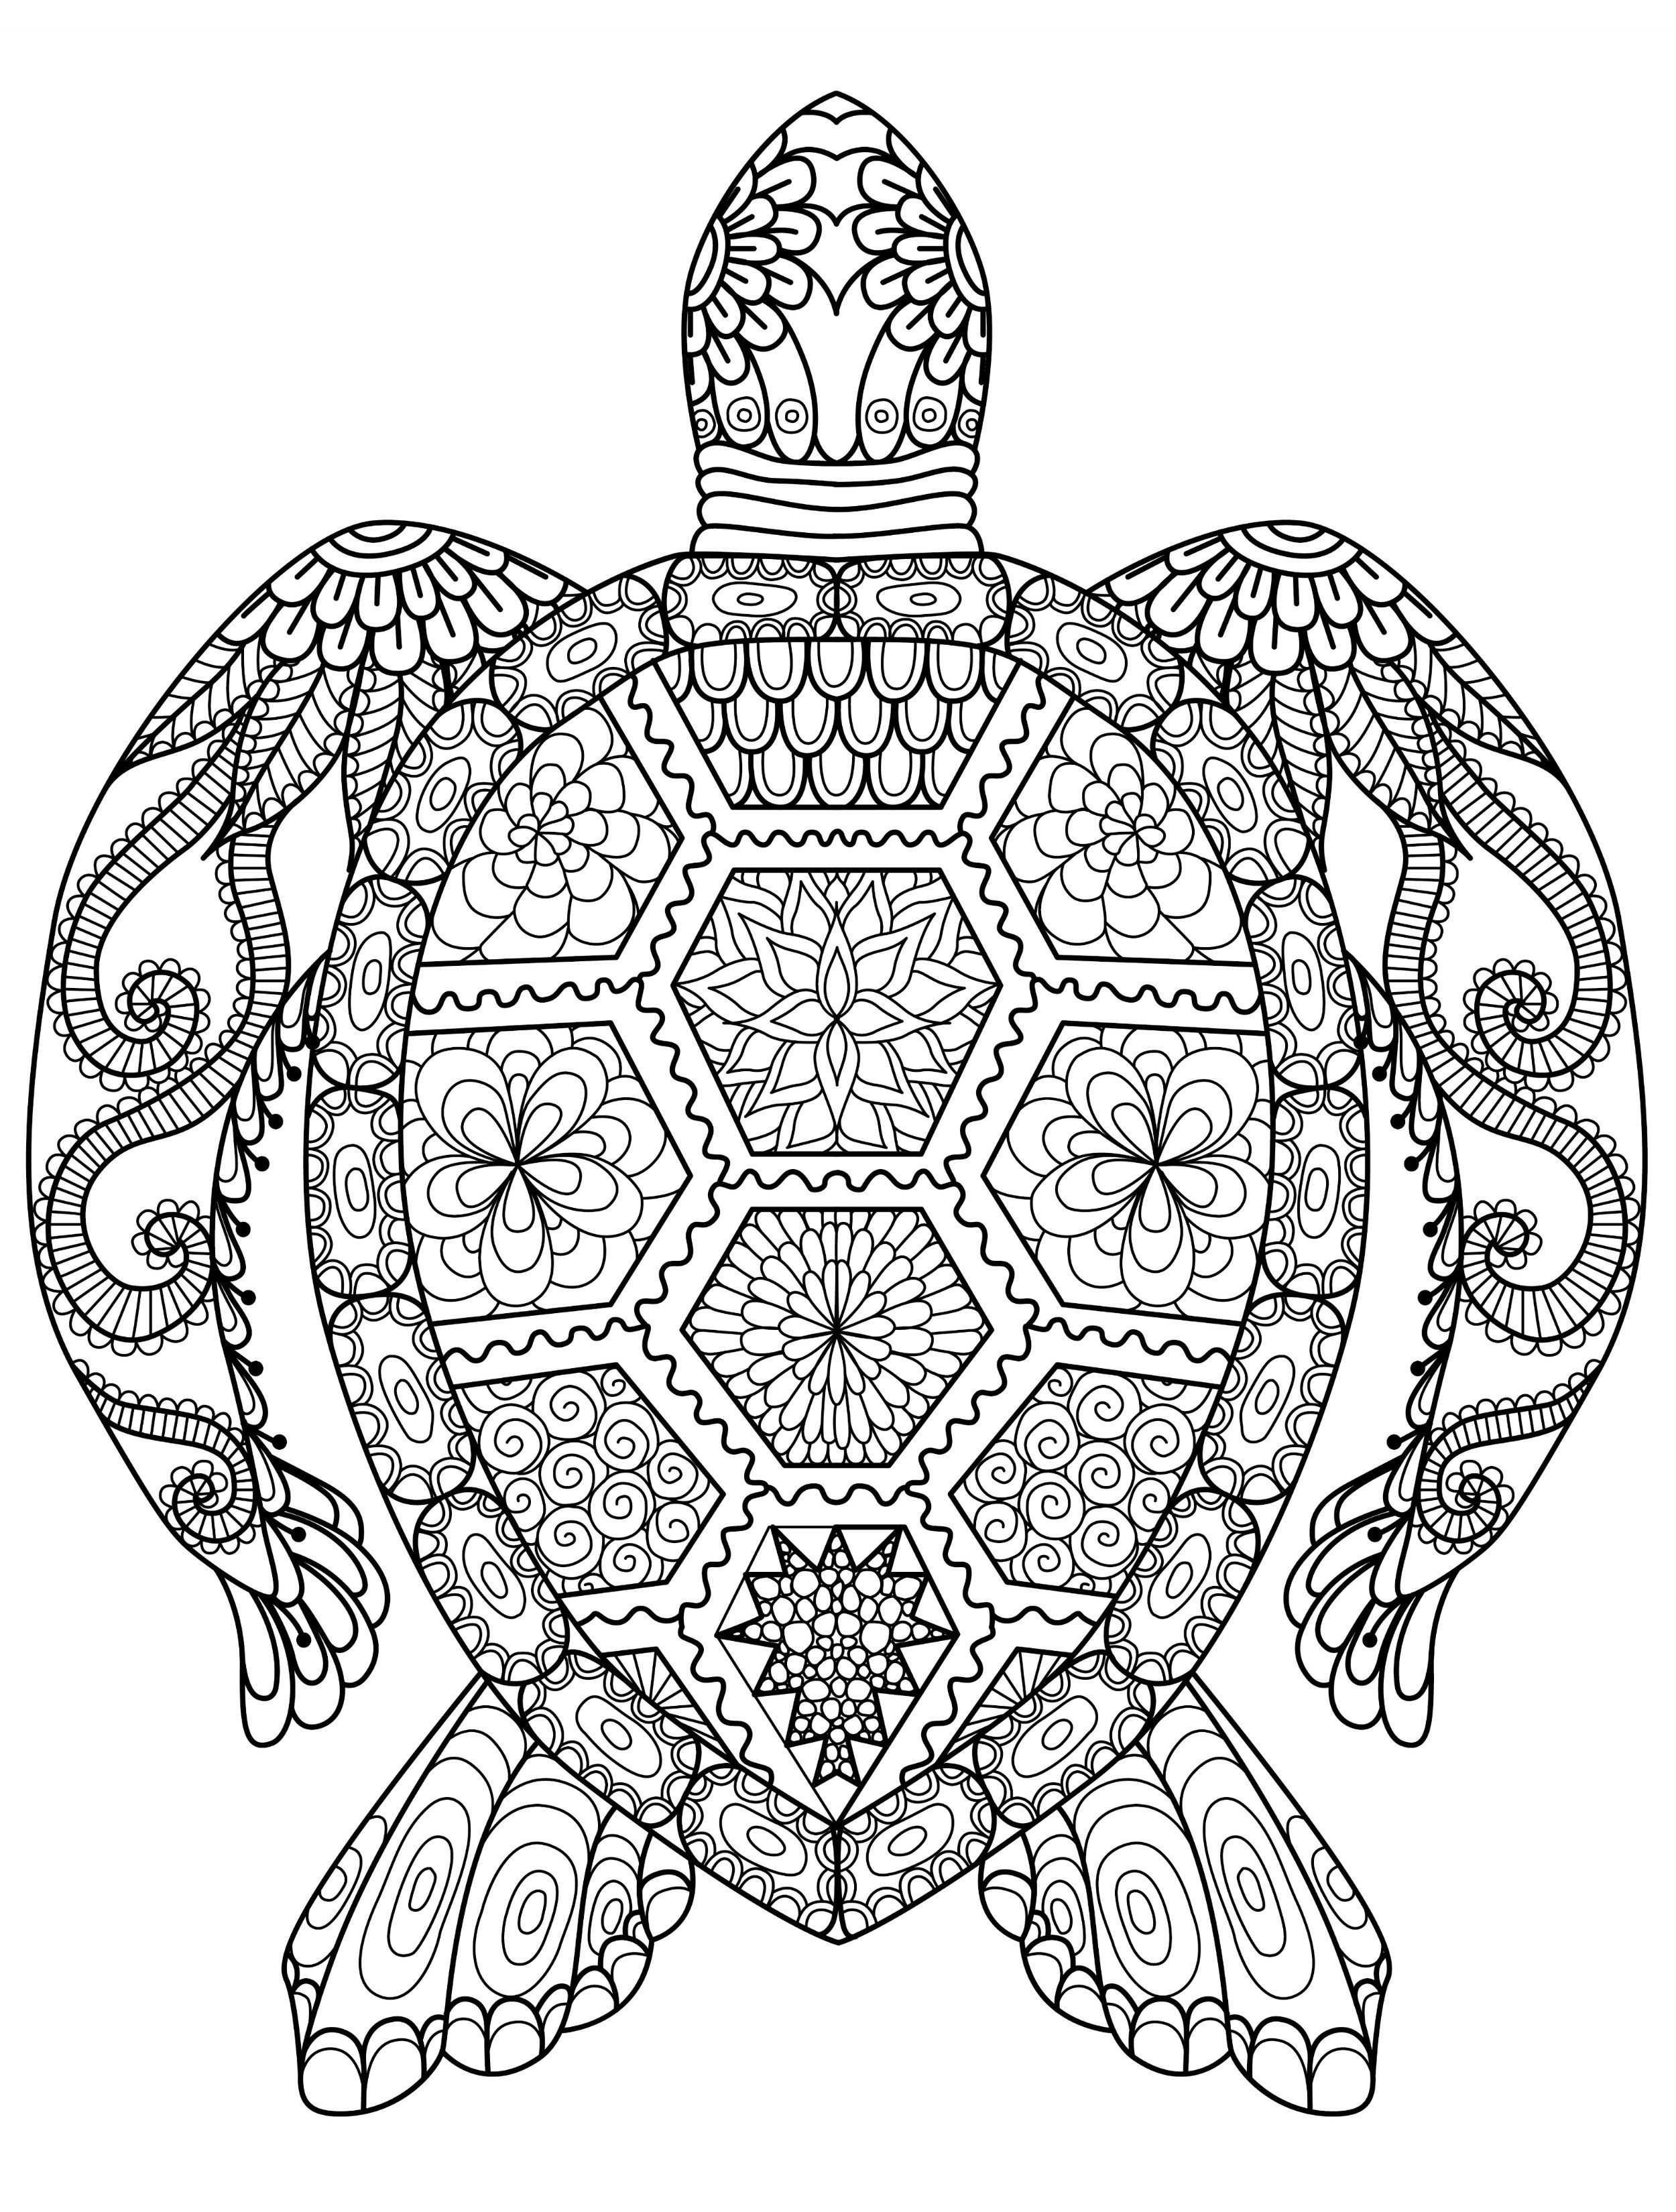 Free Coloring Pages Adult  Animal Coloring Pages for Adults Best Coloring Pages For